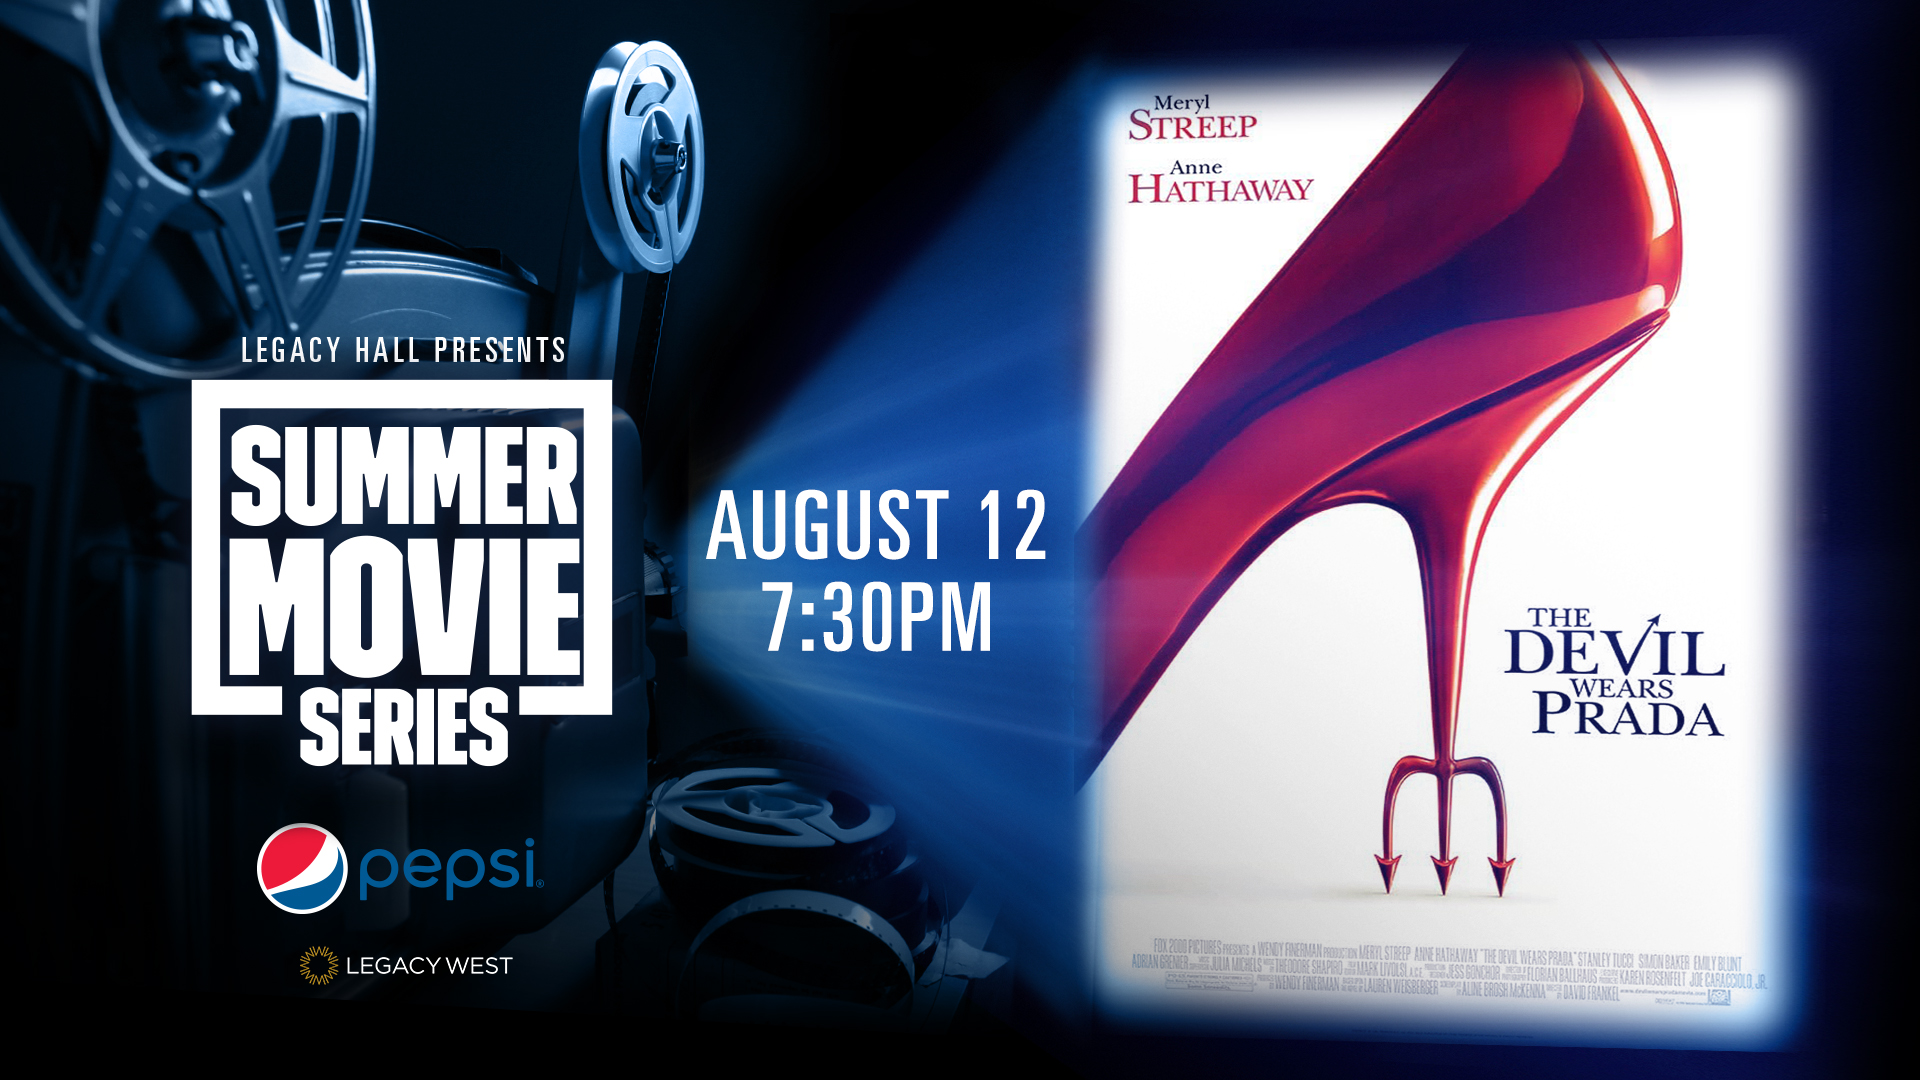 Pepsi Summer Movie Series: The Devil Wears Prada - hero